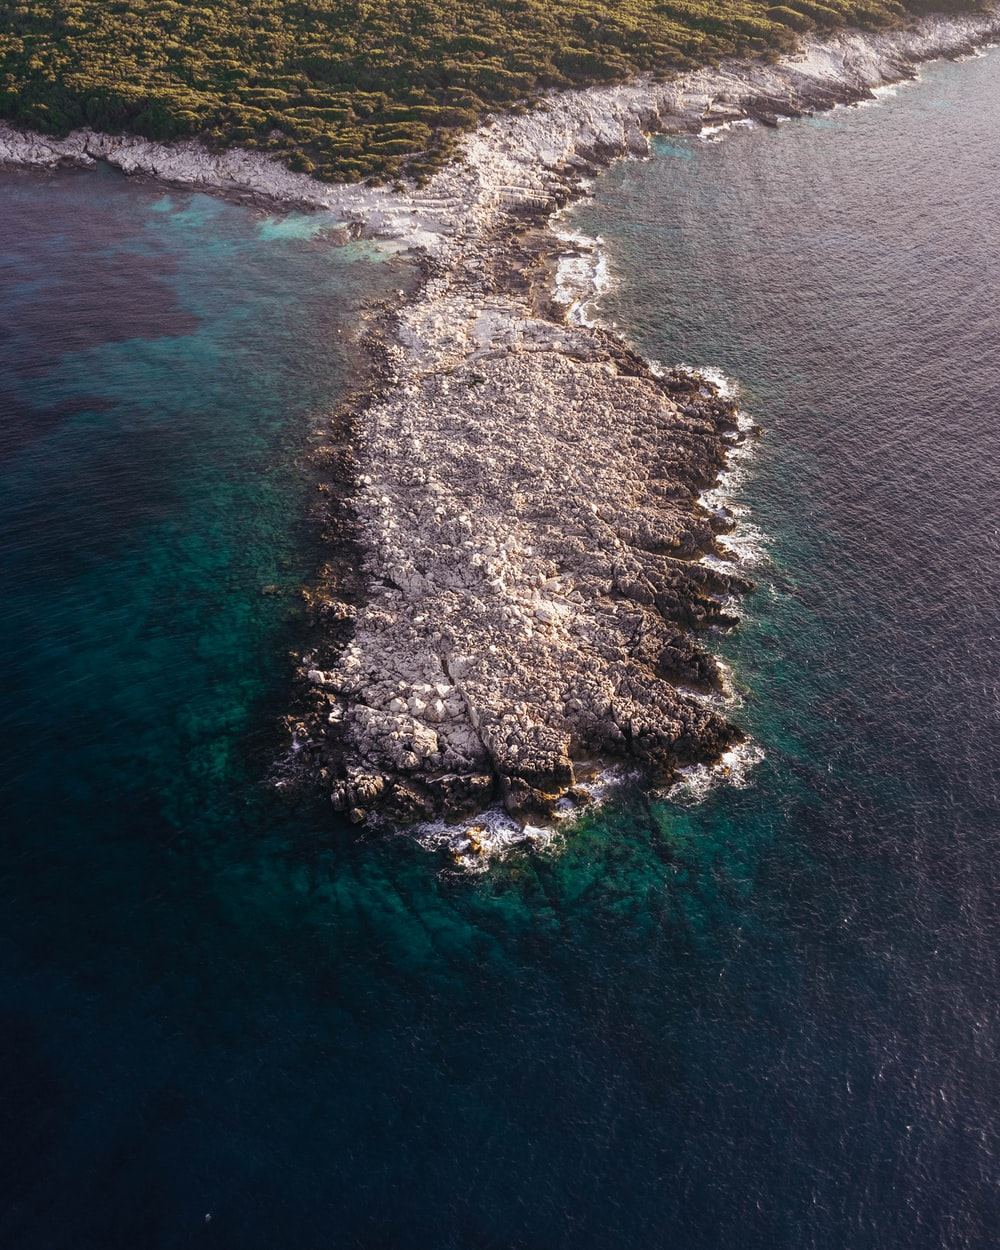 aerial view of green and brown island